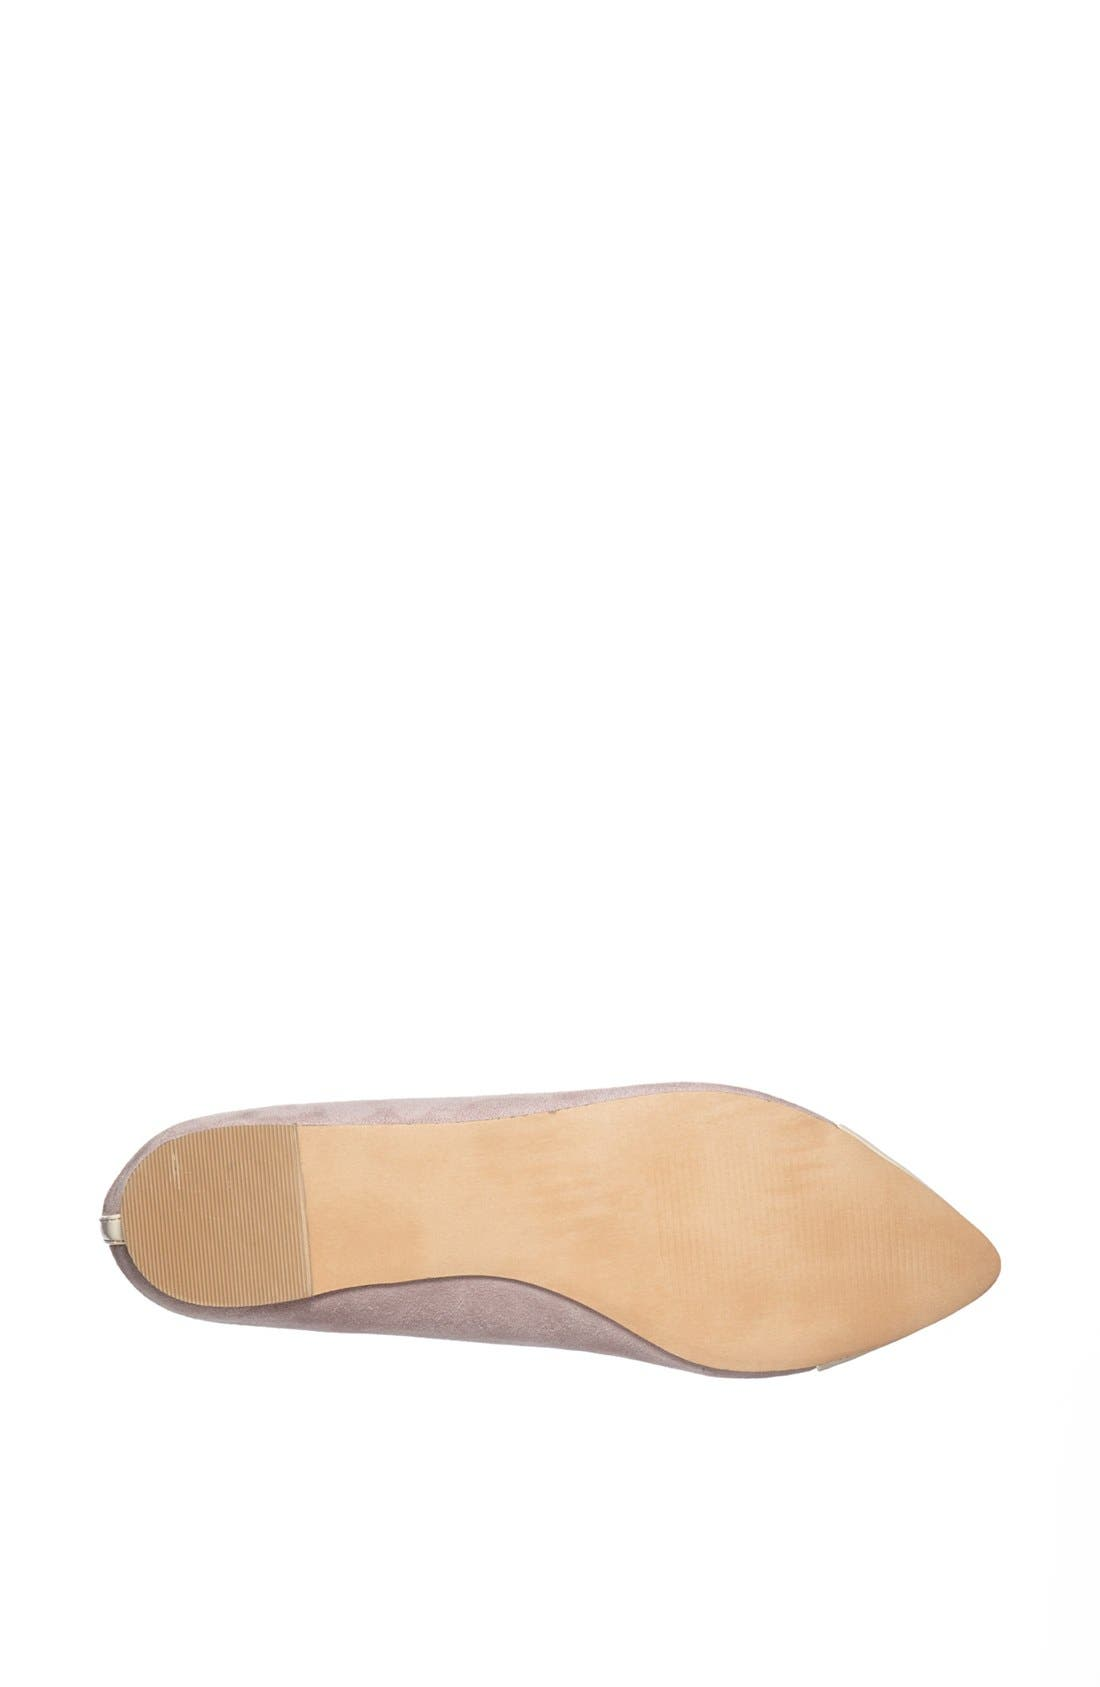 ,                             Julianne Hough for Sole Society 'Addy' Flat,                             Alternate thumbnail 9, color,                             060